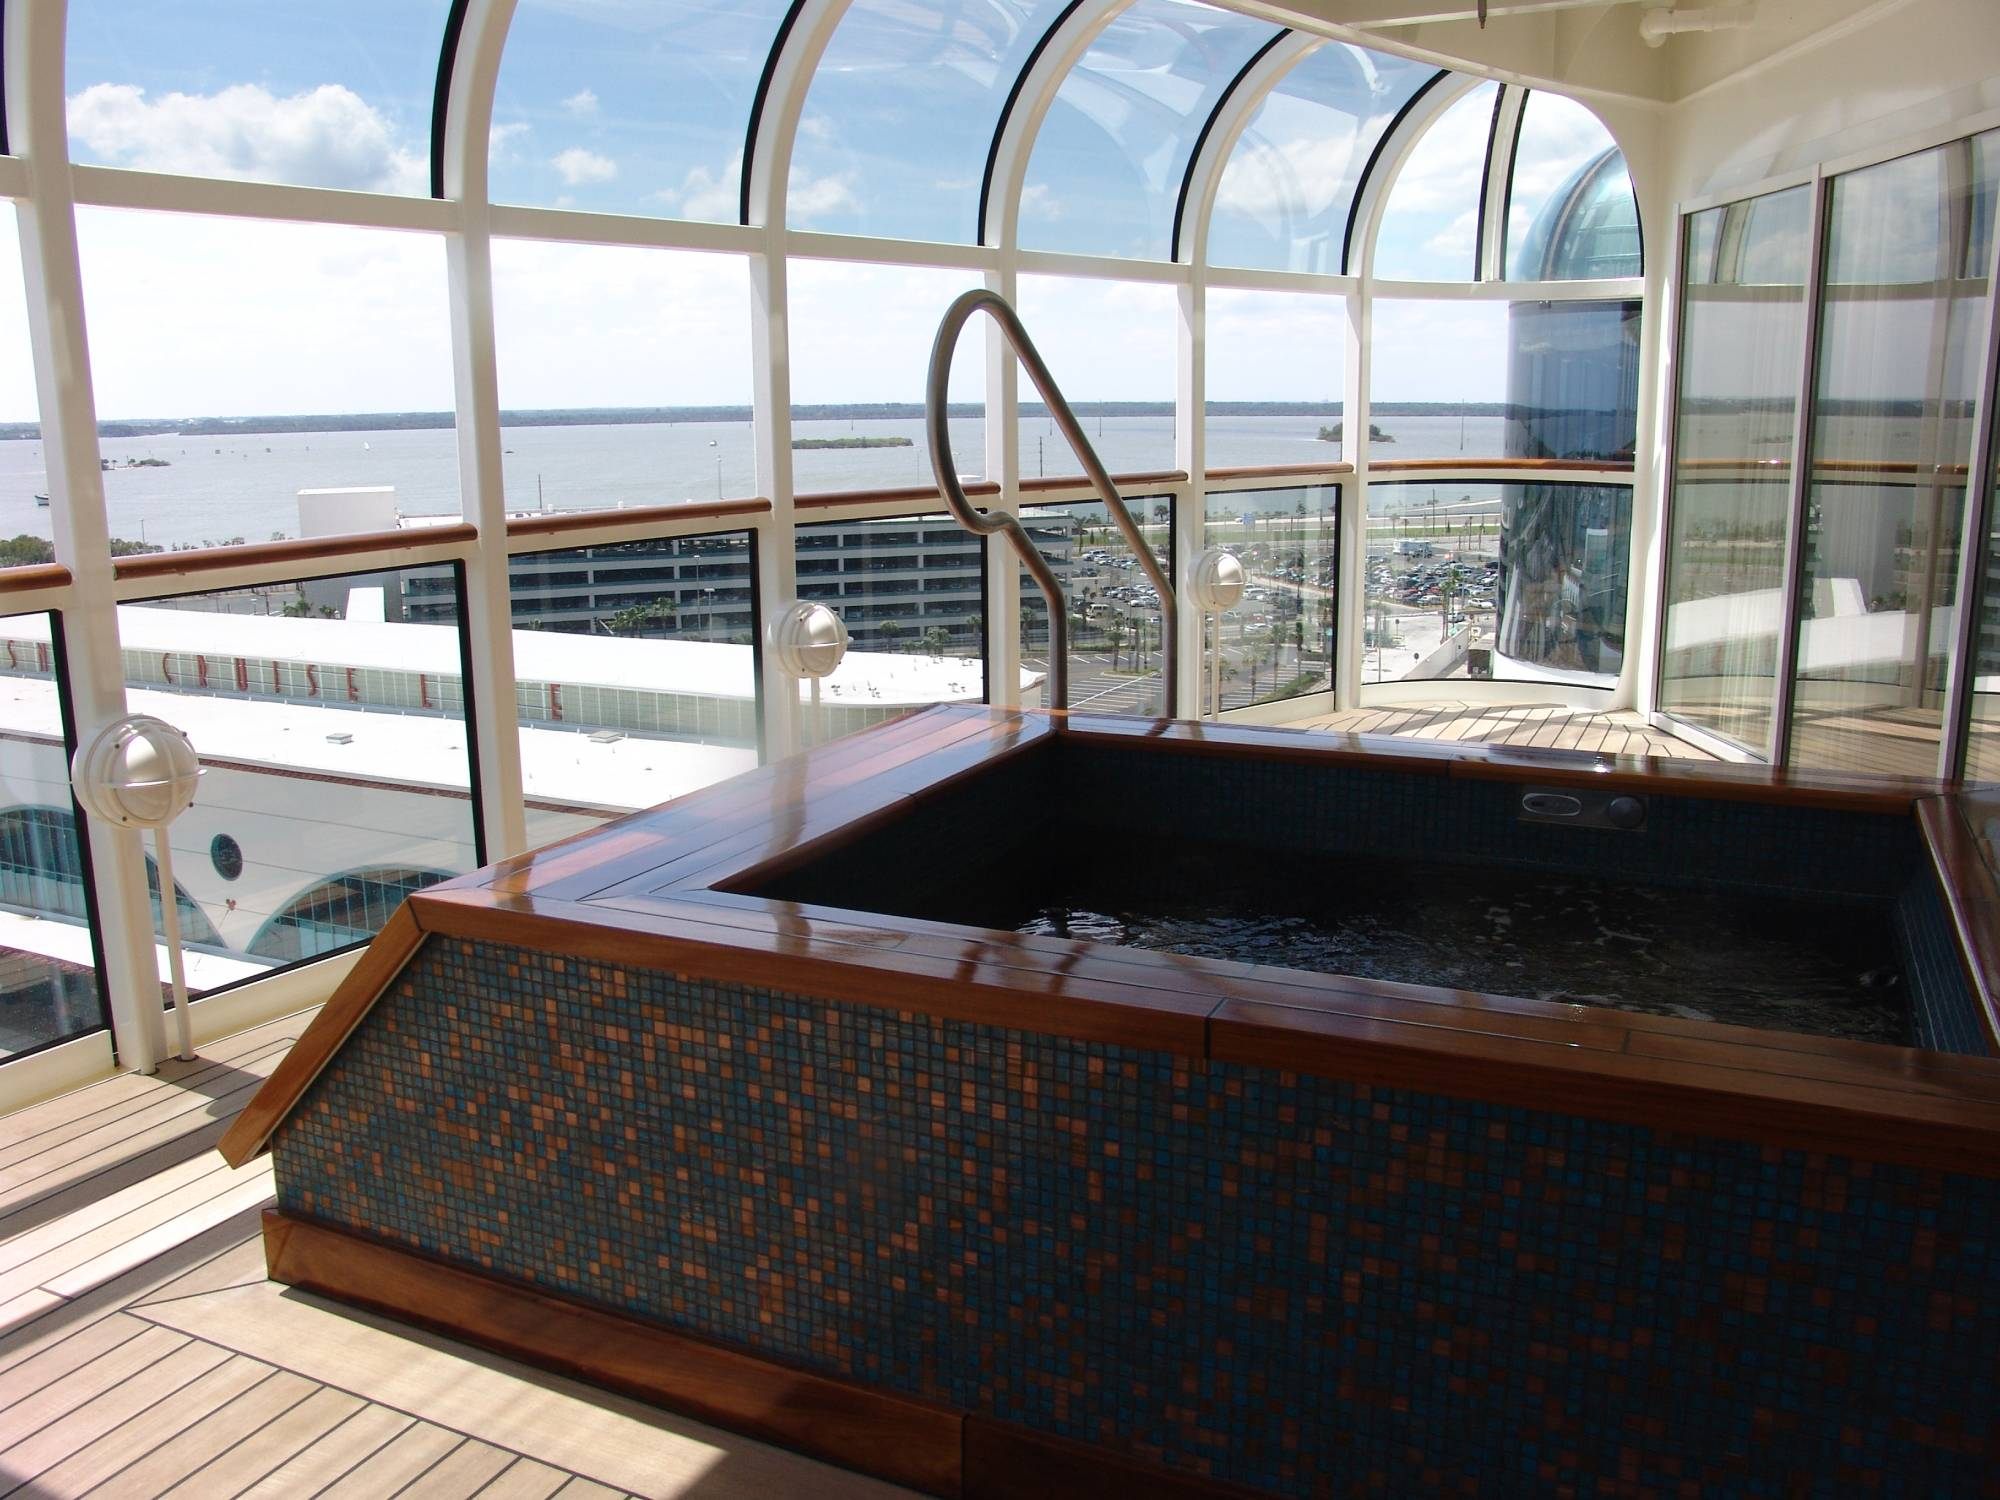 Enjoy a tropical oasis onboard the Disney Cruise Line in the Rainforest |PassPorter.com